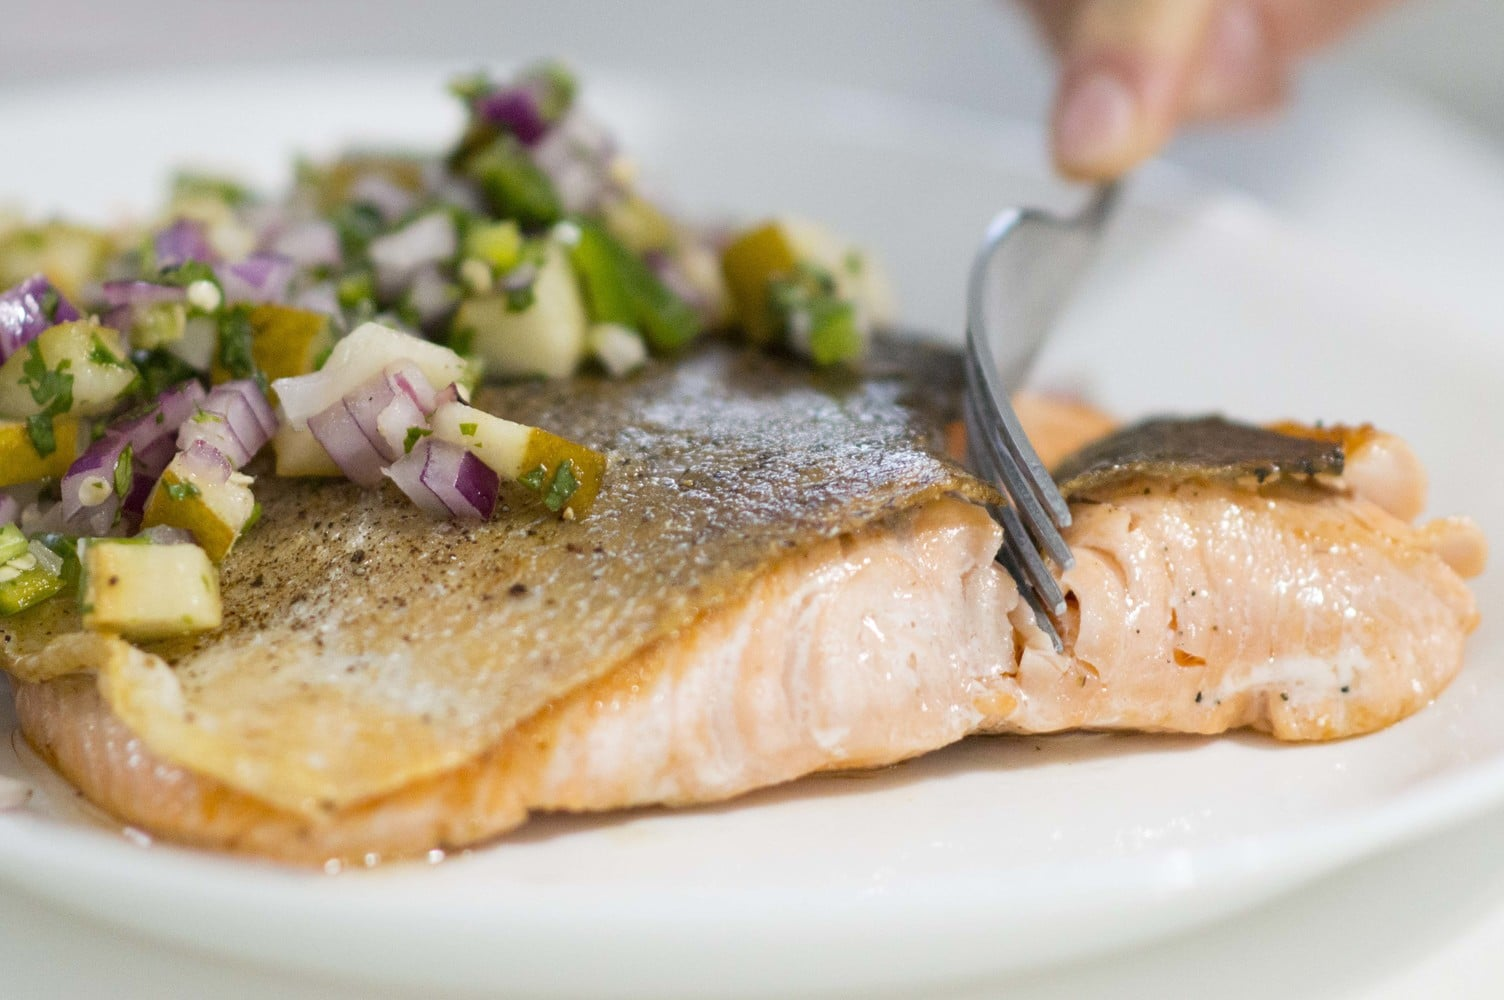 The Crispy Skin Salmon plated and ready to eat